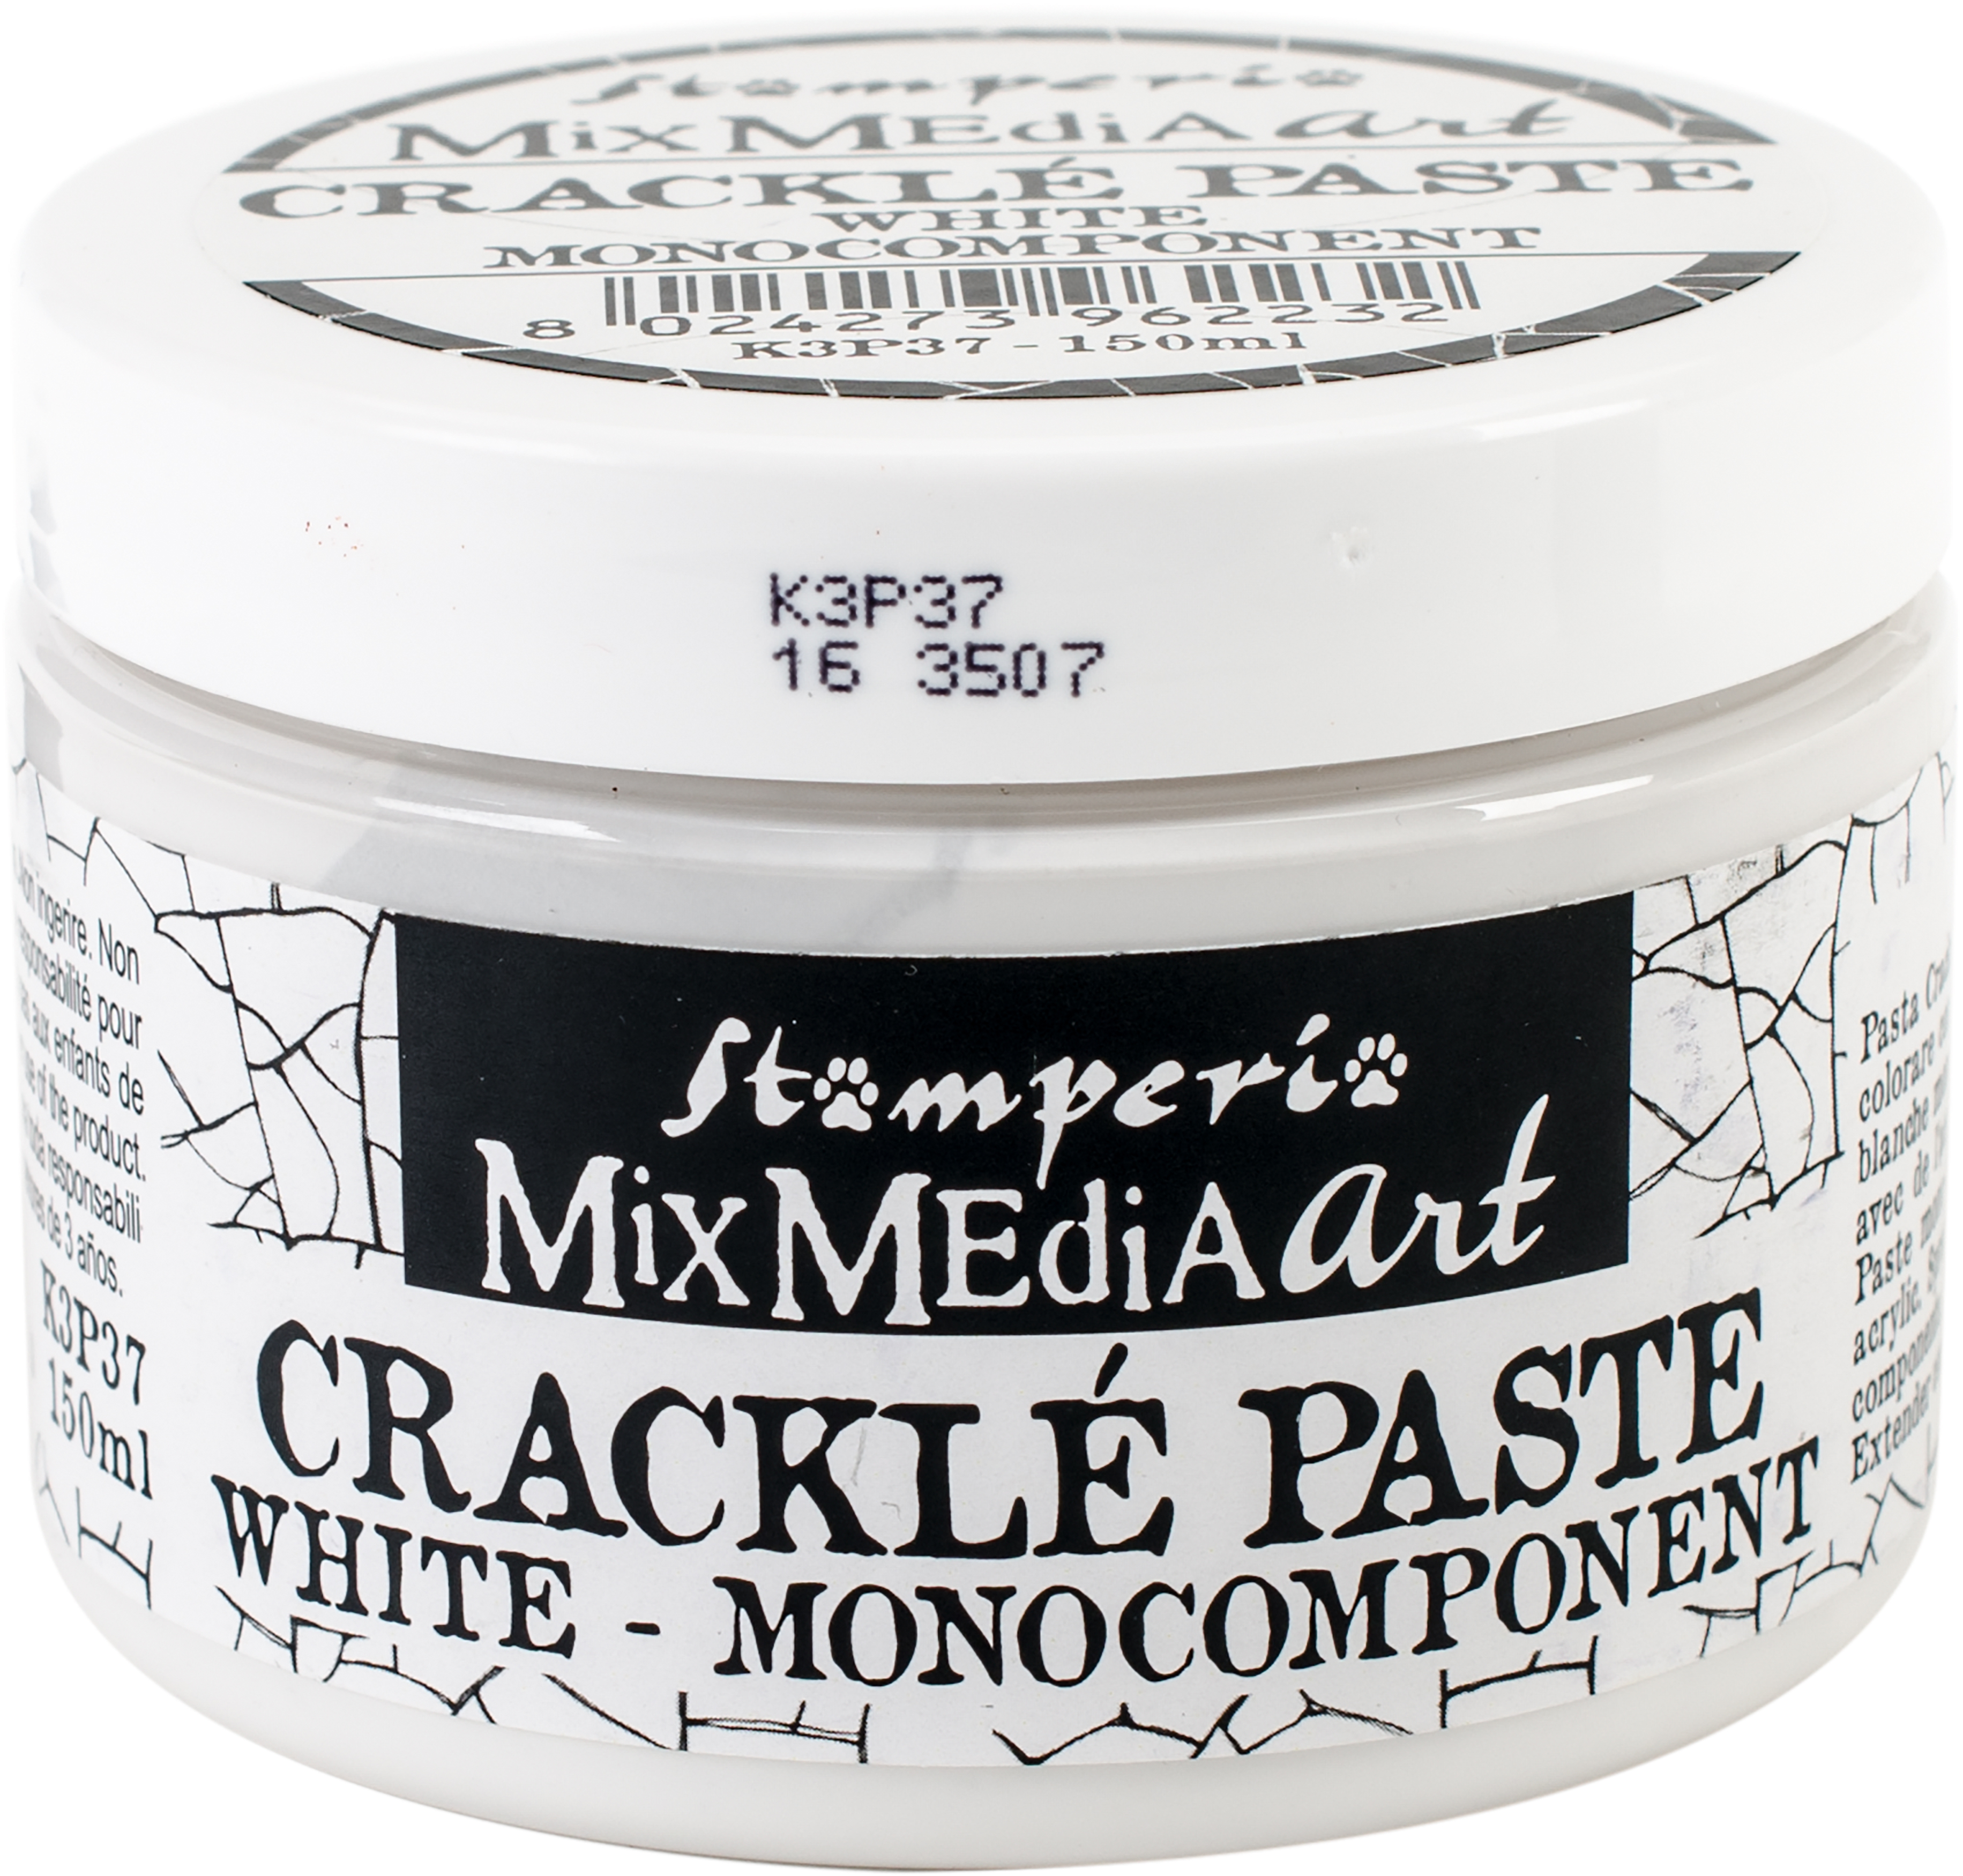 Crackle Paste White